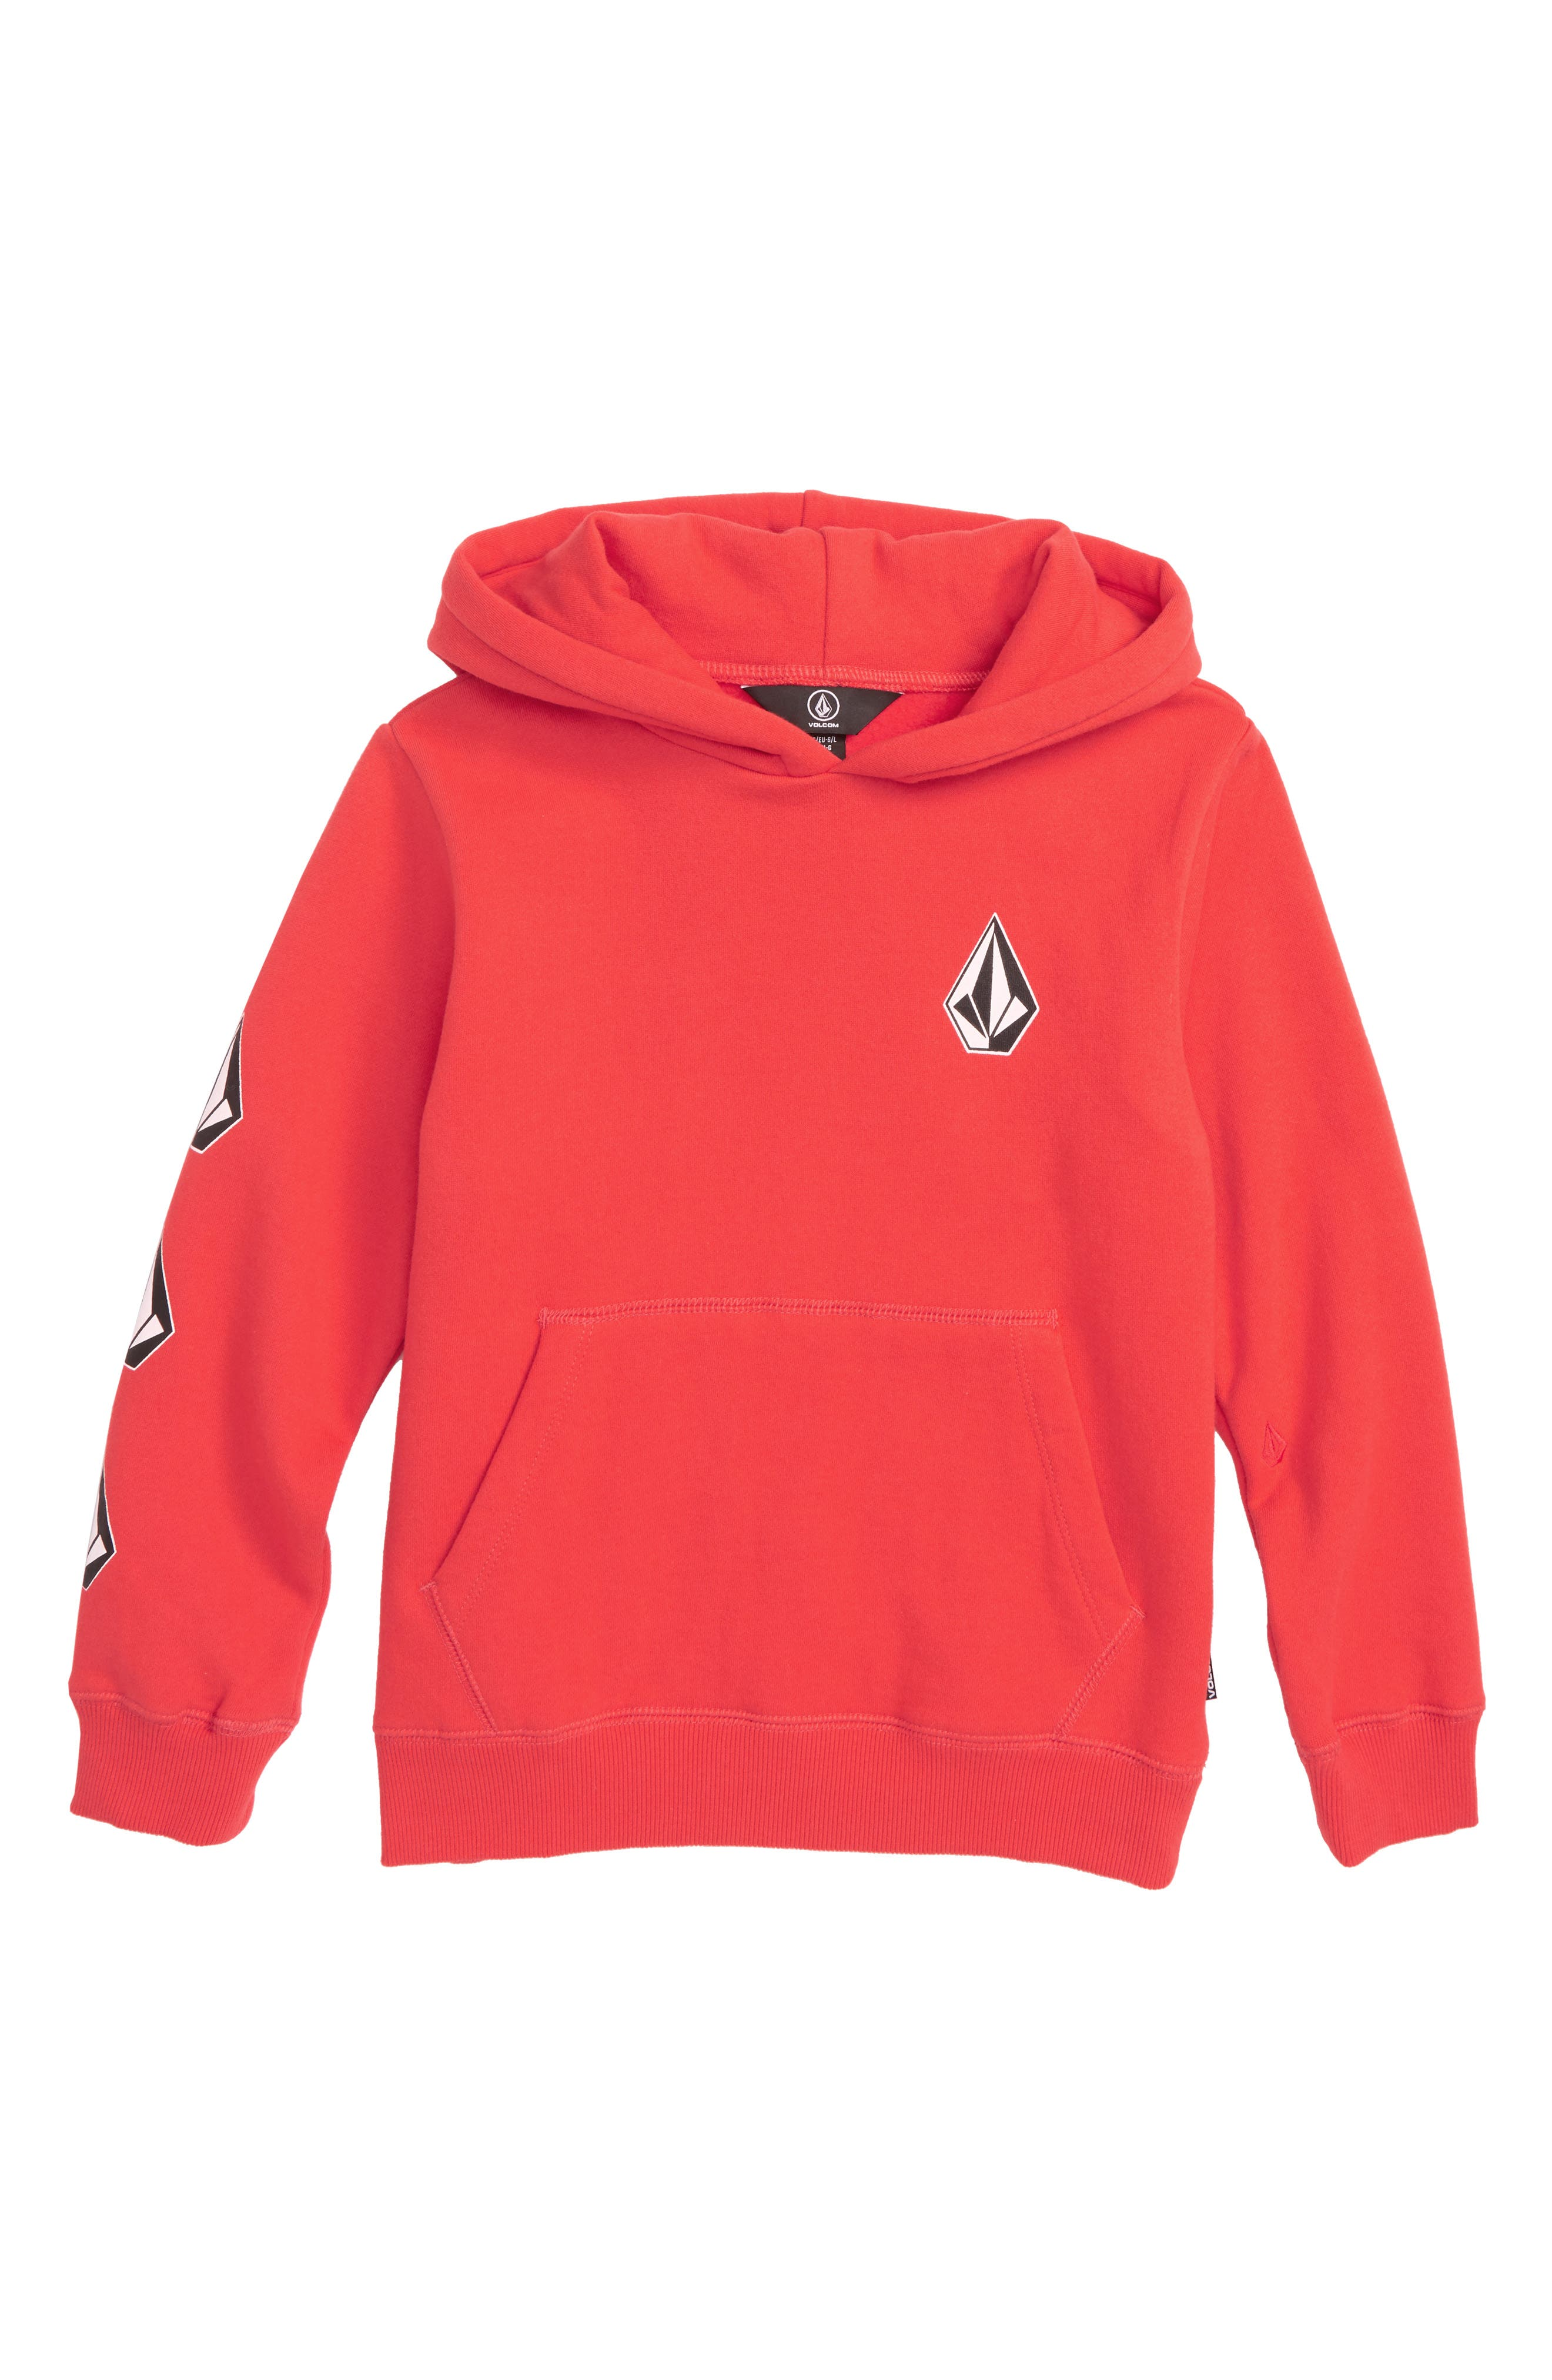 Deadly Stones Hoodie,                         Main,                         color, SPARK RED